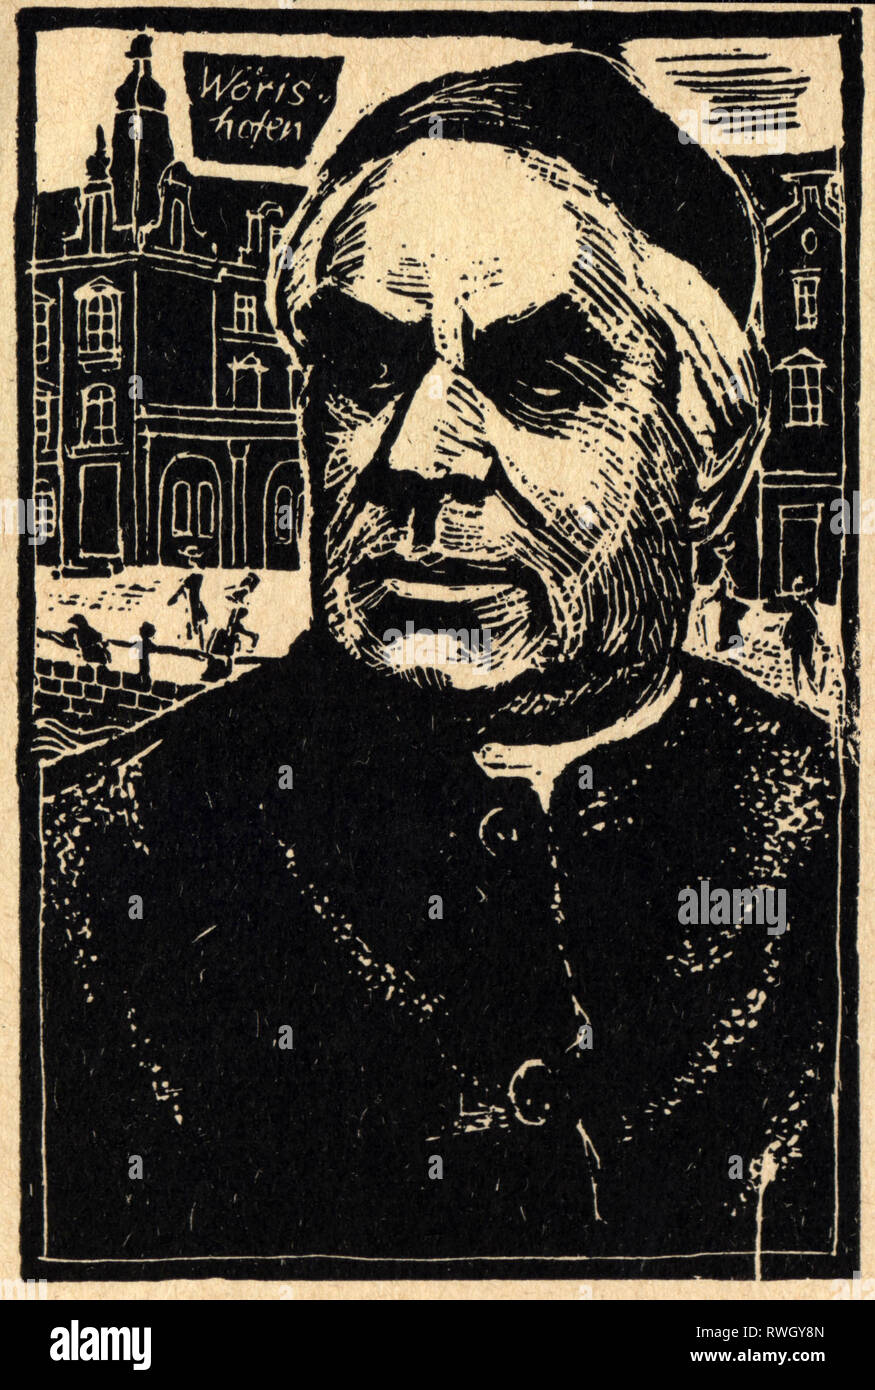 Kneipp, Sebastian, 17.5.1821 - 17.6.1897, German pastor and naturopath, portrait, woodcut, 20th century, Additional-Rights-Clearance-Info-Not-Available - Stock Image